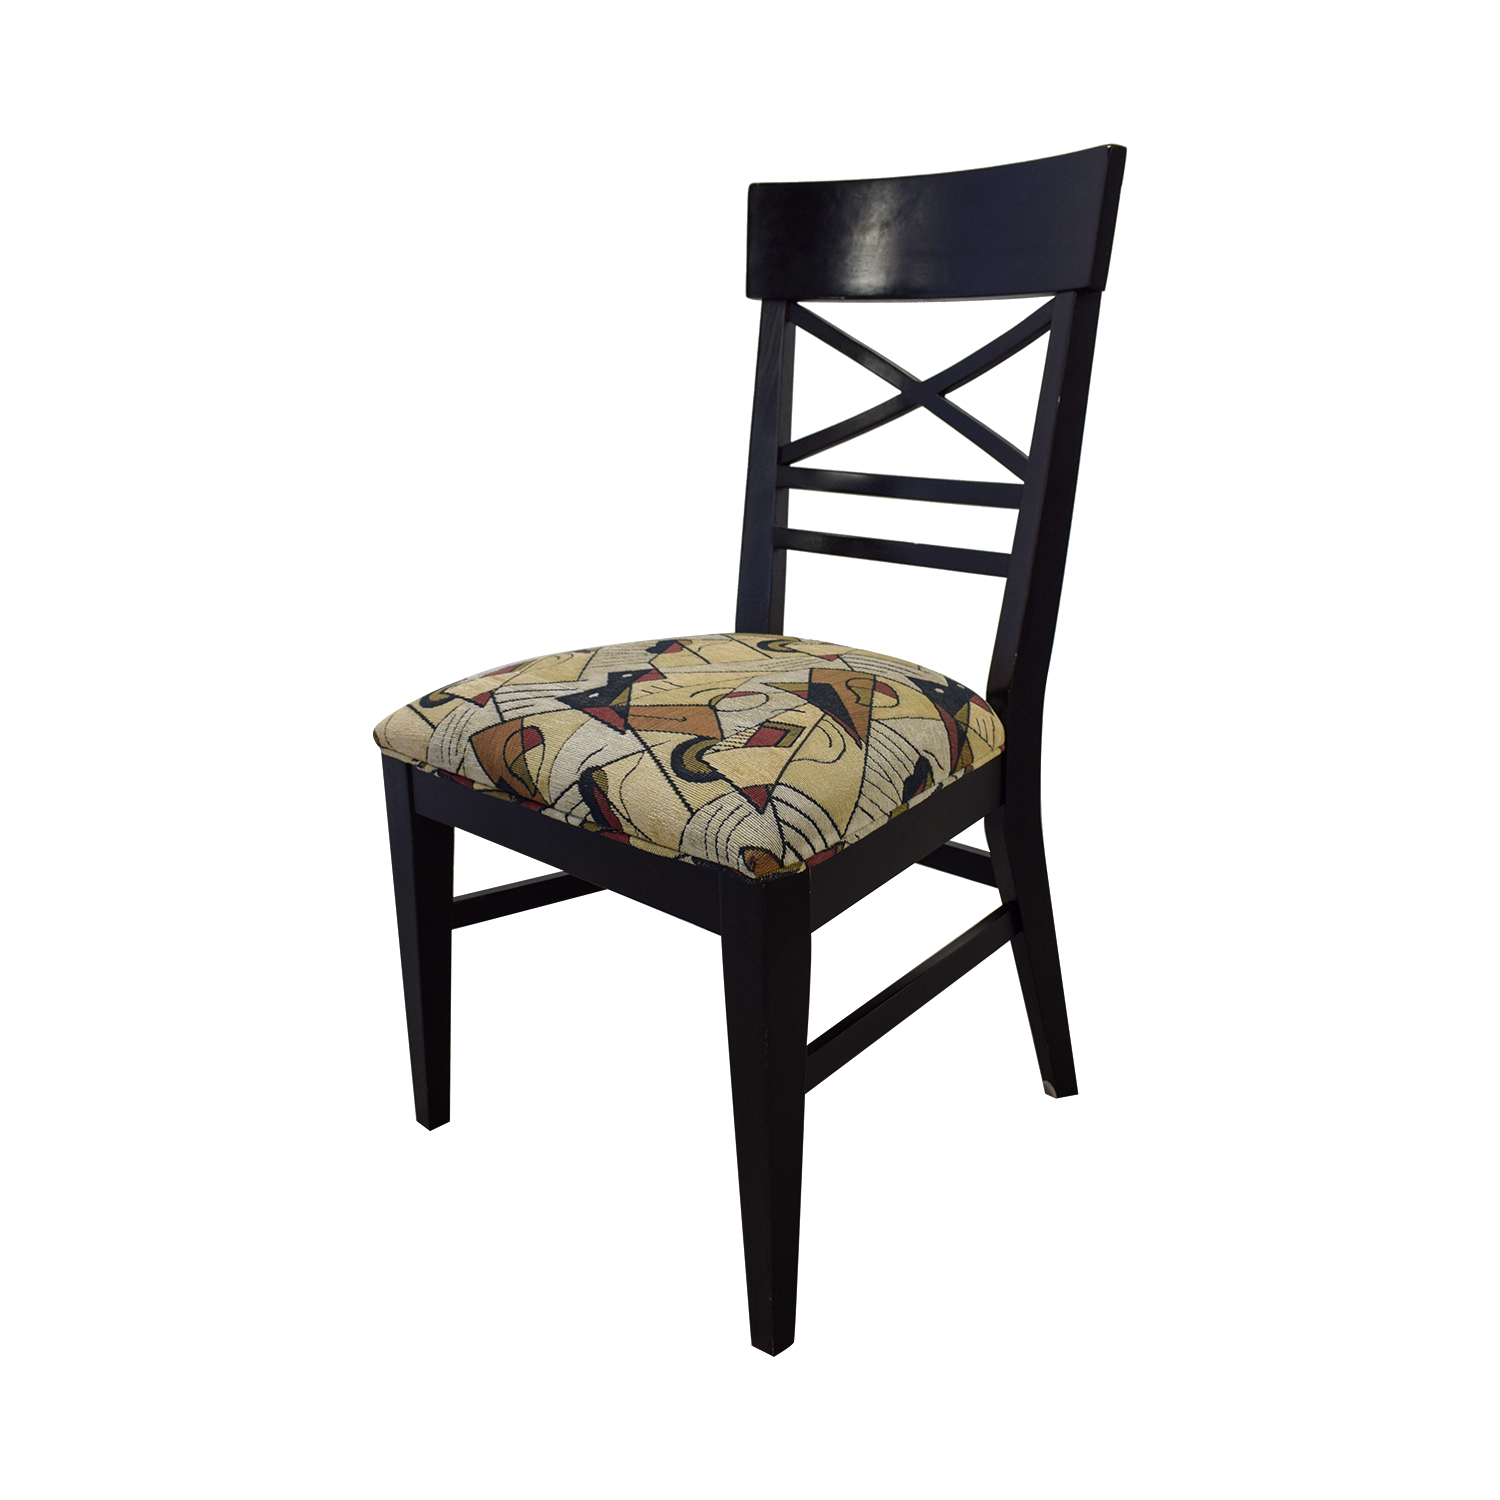 Ethan Allan Ethan Allan Geometric Upholstered Dining Chairs Multi Colored